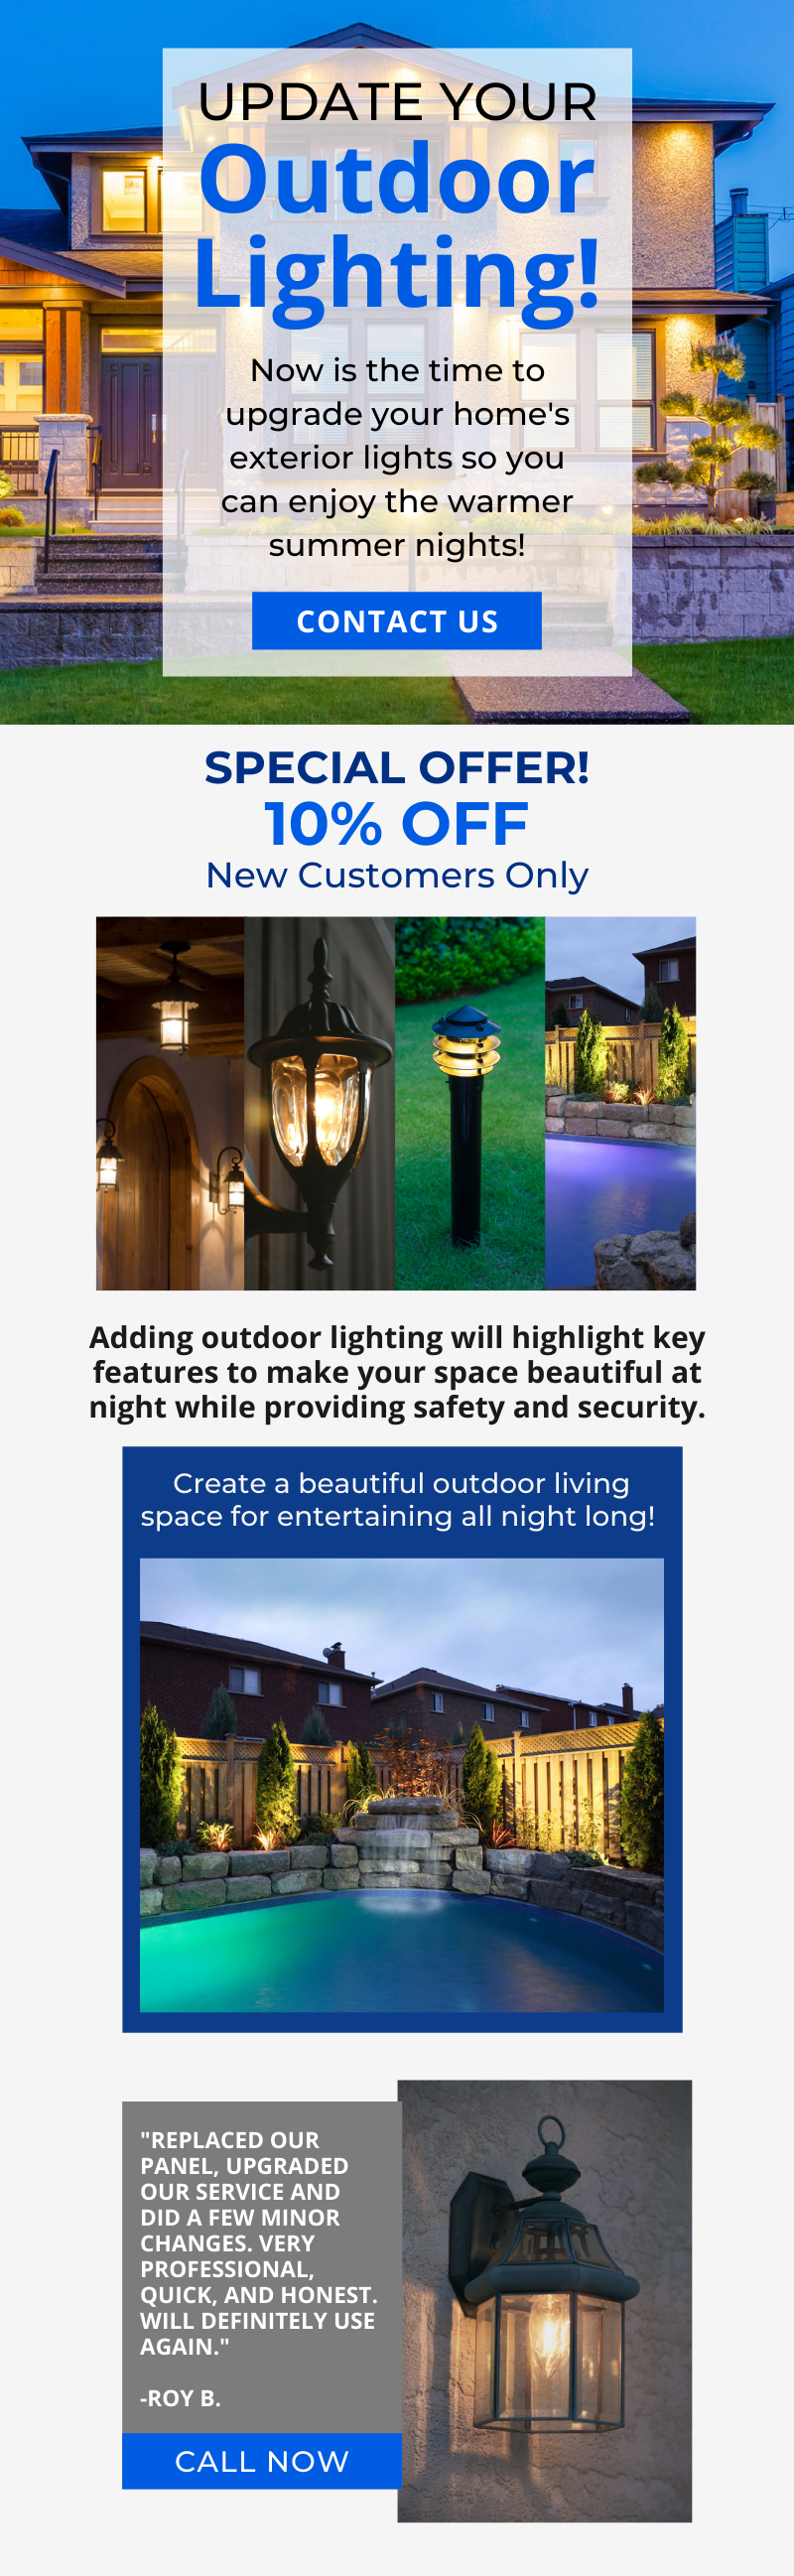 Light Up Your Outdoors 3